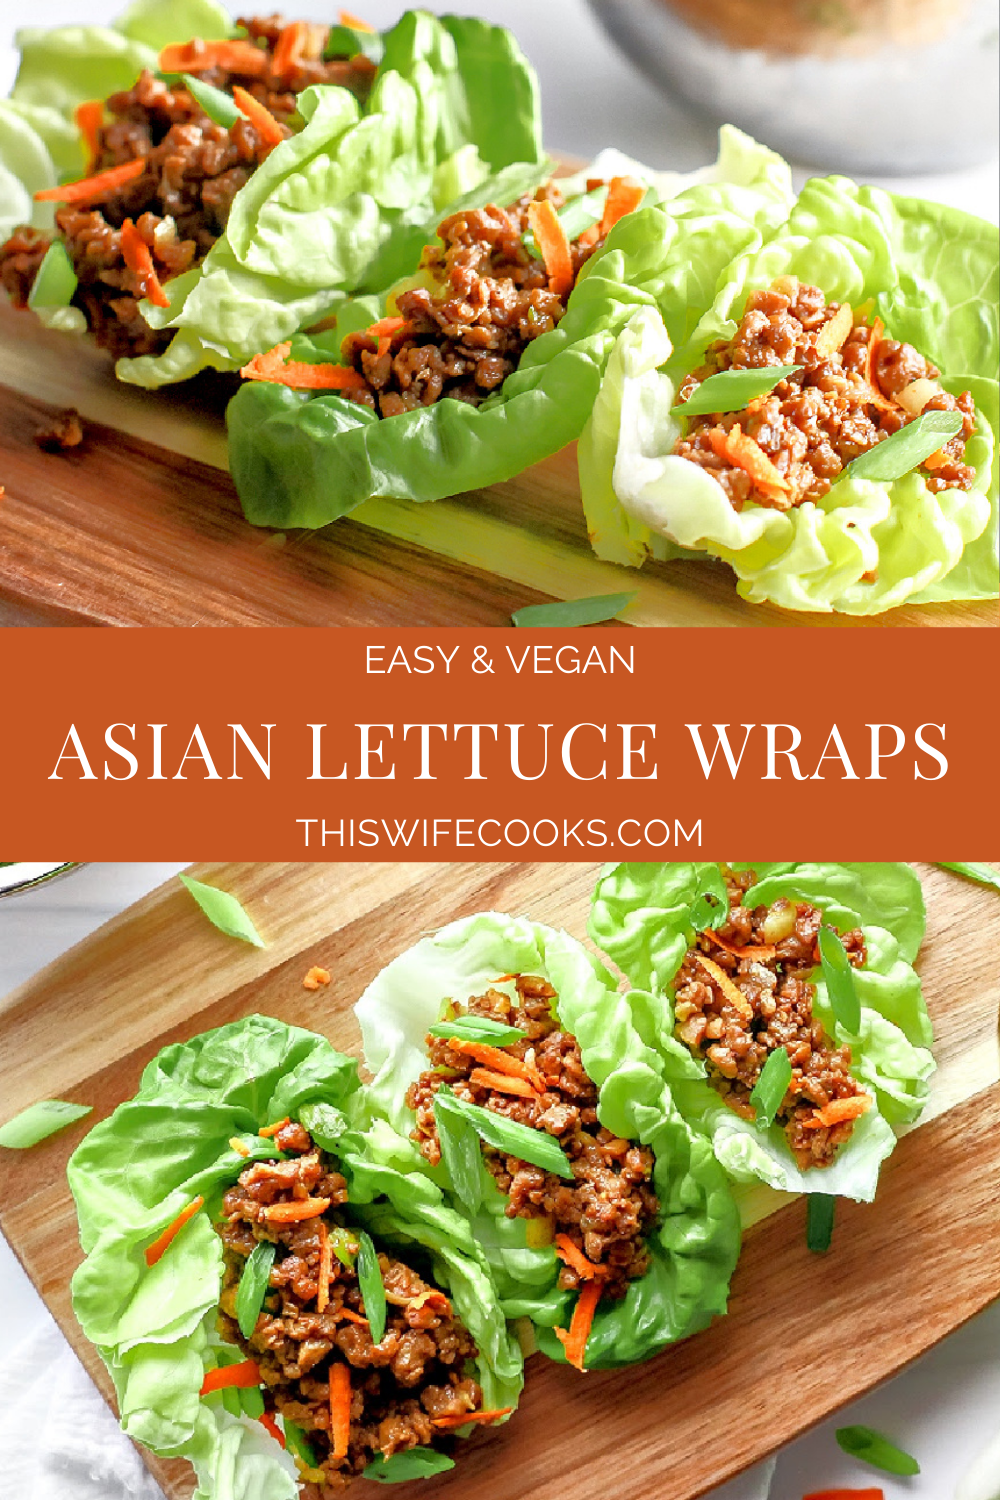 Asian Lettuce Wraps ~ Skip the takeout line and serving up this easy and tasty plant-based dish right in the comfort of your own home! via @thiswifecooks